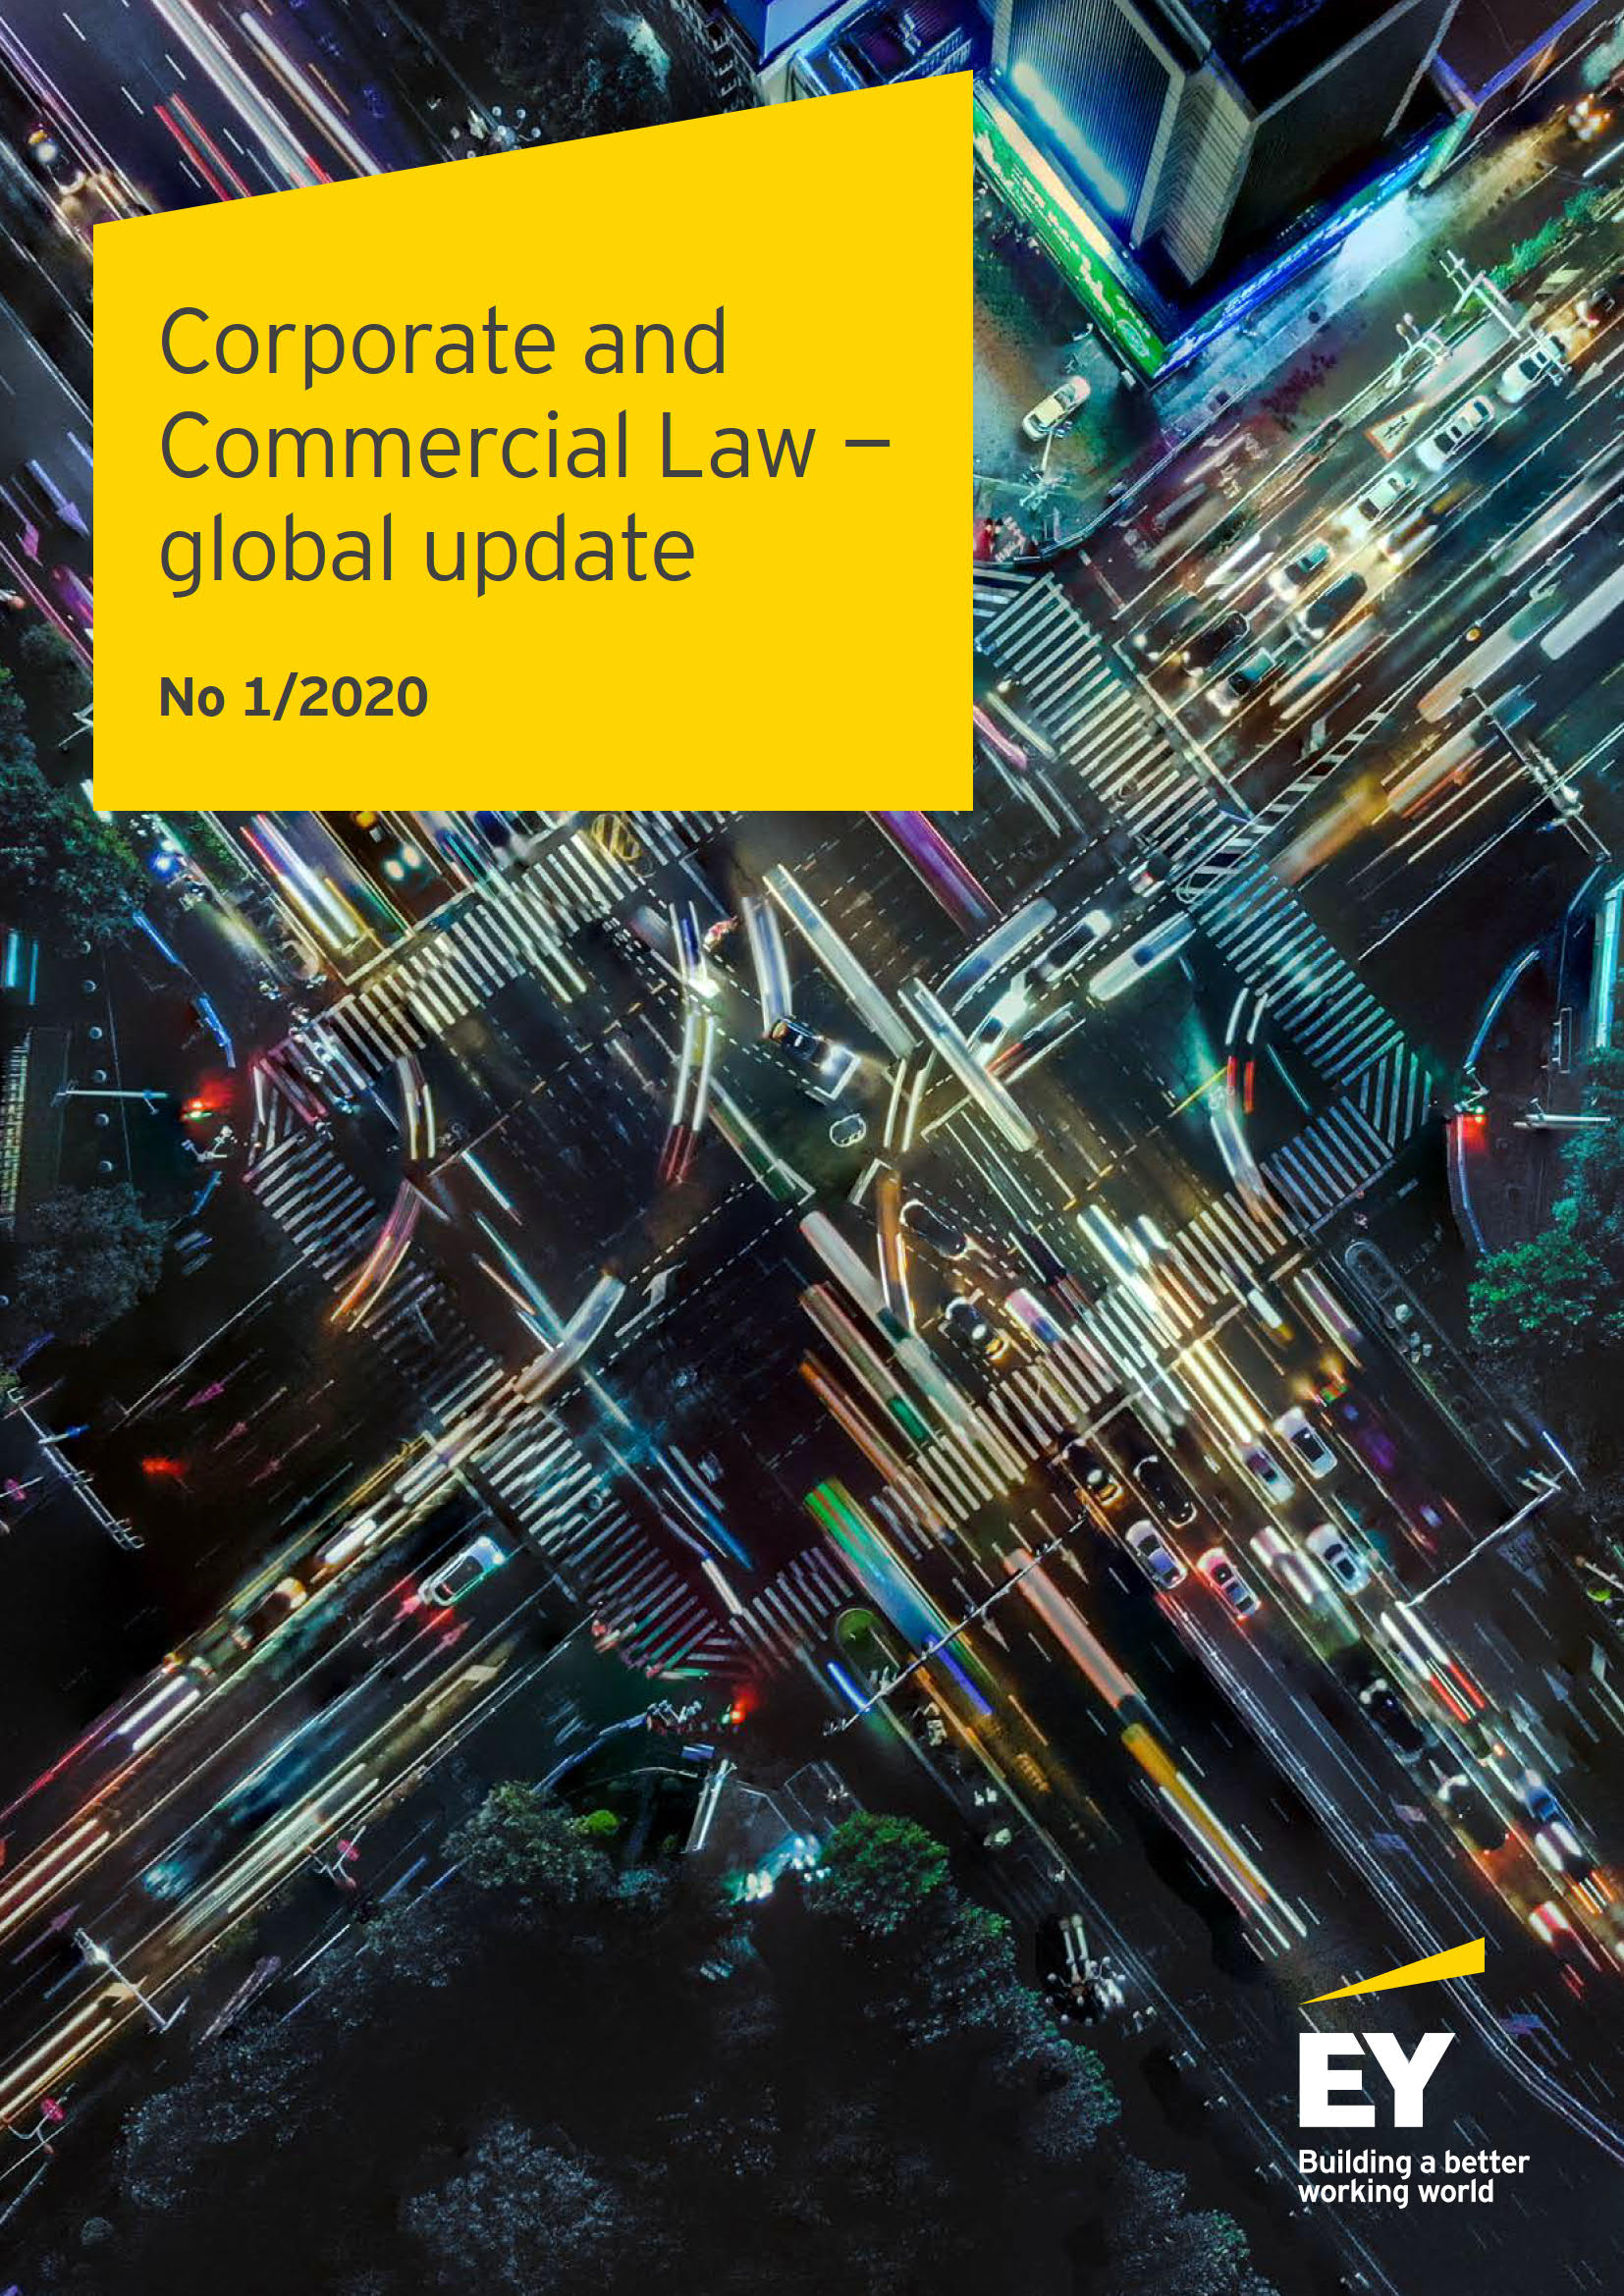 Corporate and Commercial Law - global update, No.1 2020